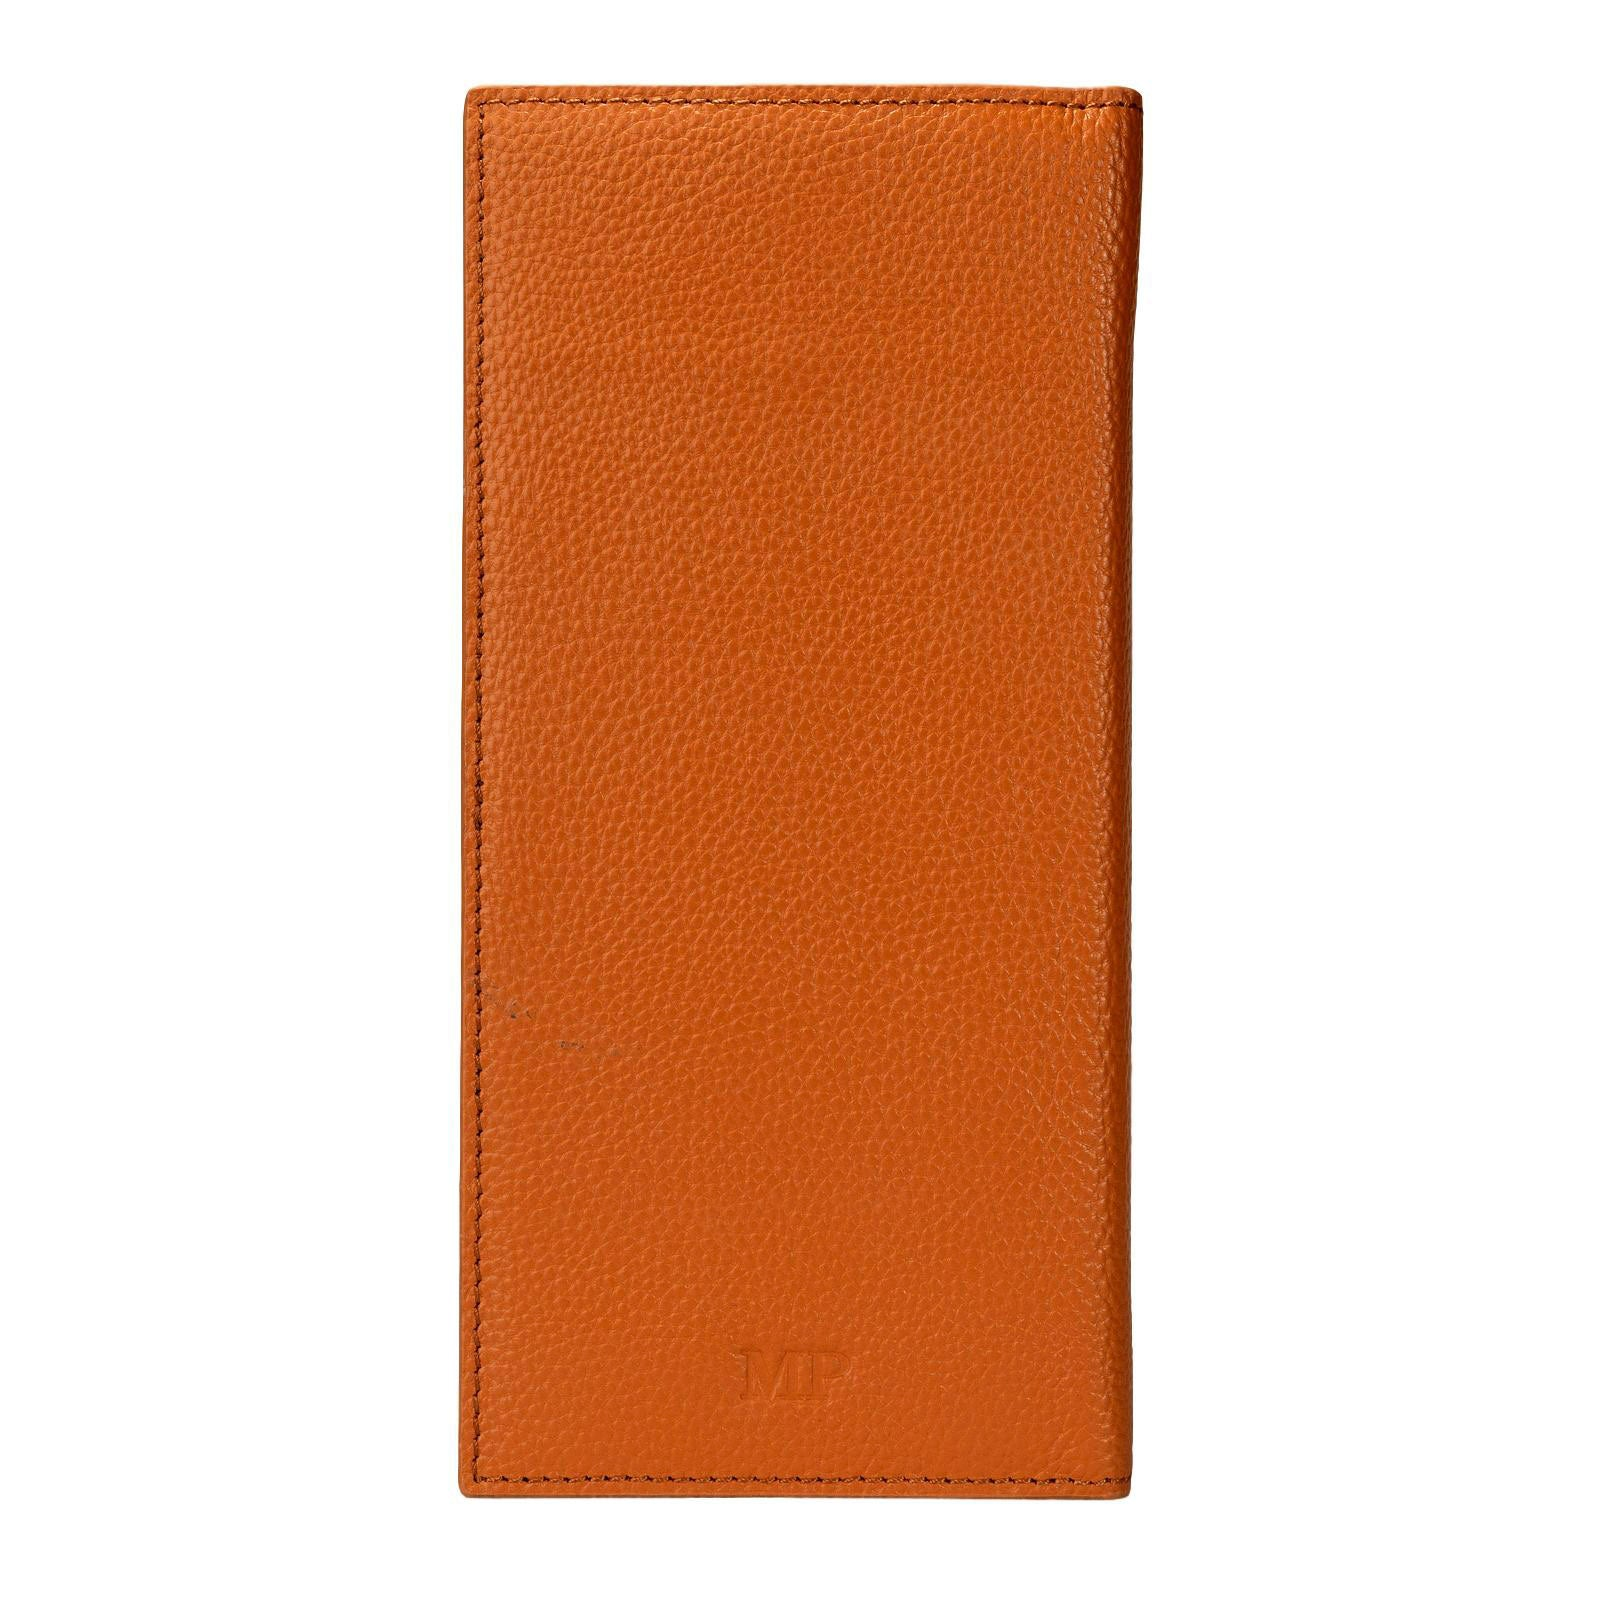 Mon Purse Pebbled Travel Wallet in Tan